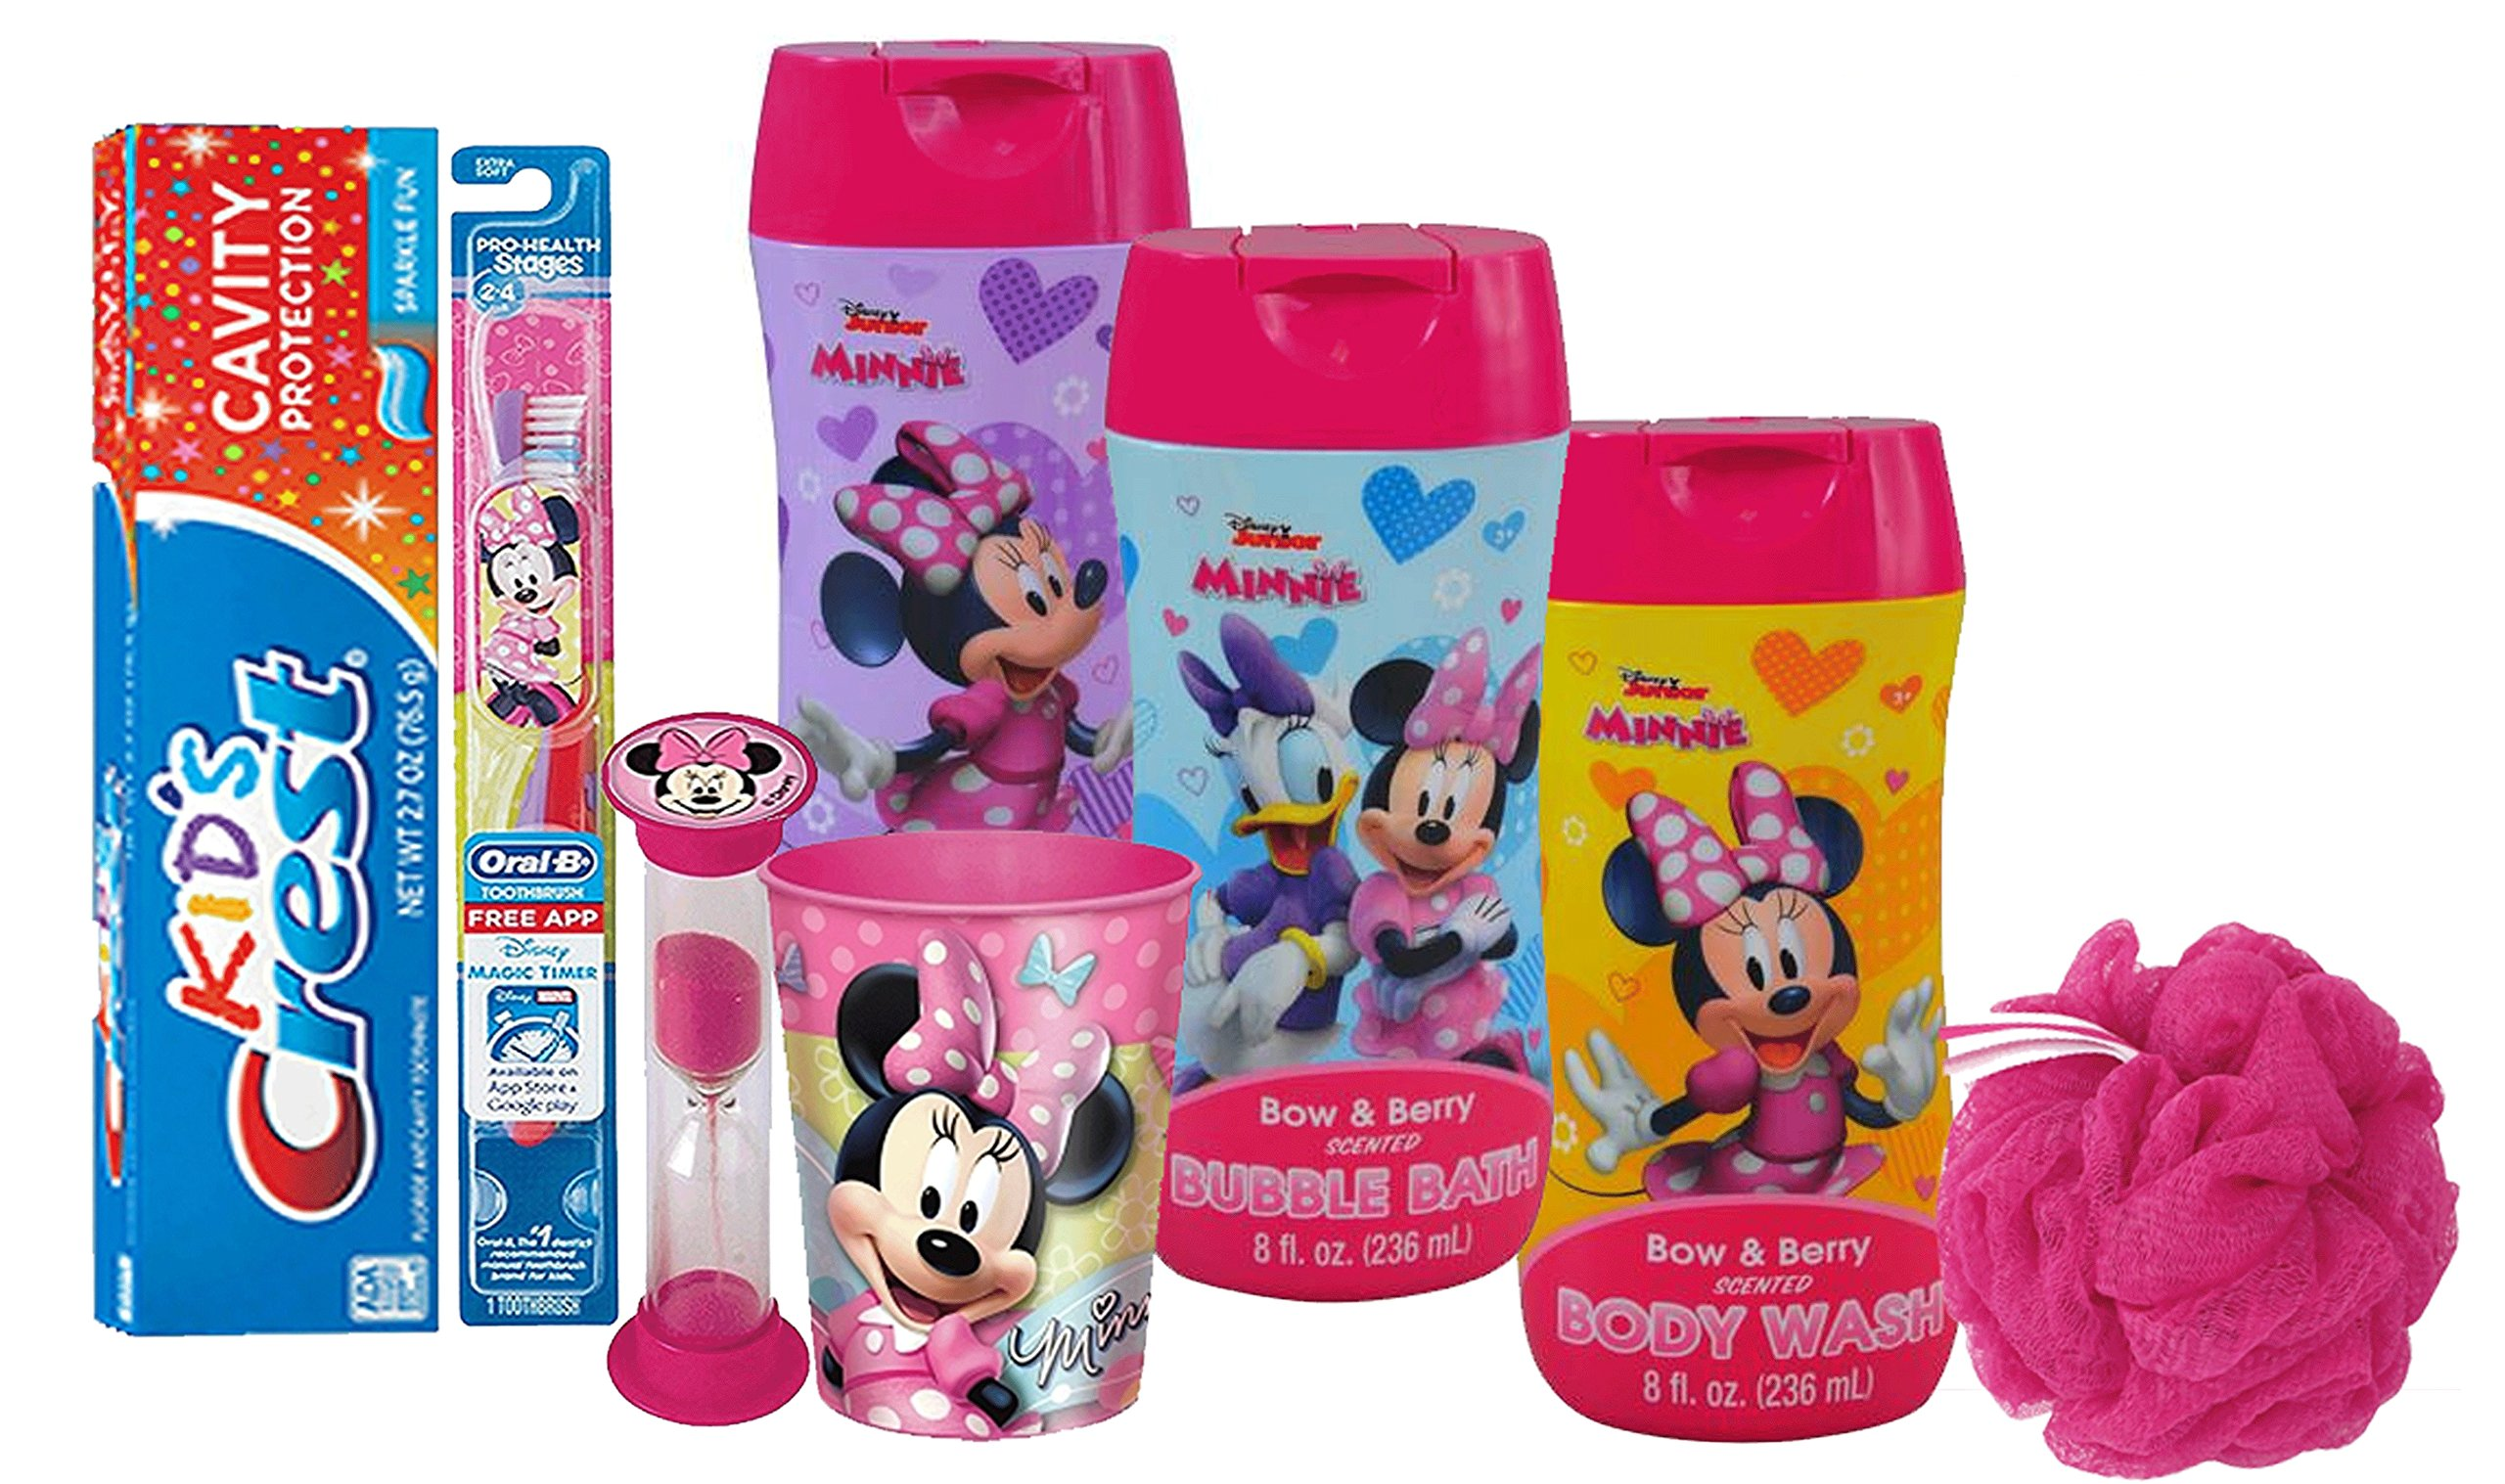 Disney Minnie Mouse Girl's All Inclusive Bath Time Gift Set! Includes Body Wash, Shampoo, Bubble Bath, Toothbrush, Toothpaste, Brushing Timer & Mouthwash Rinse Cup!